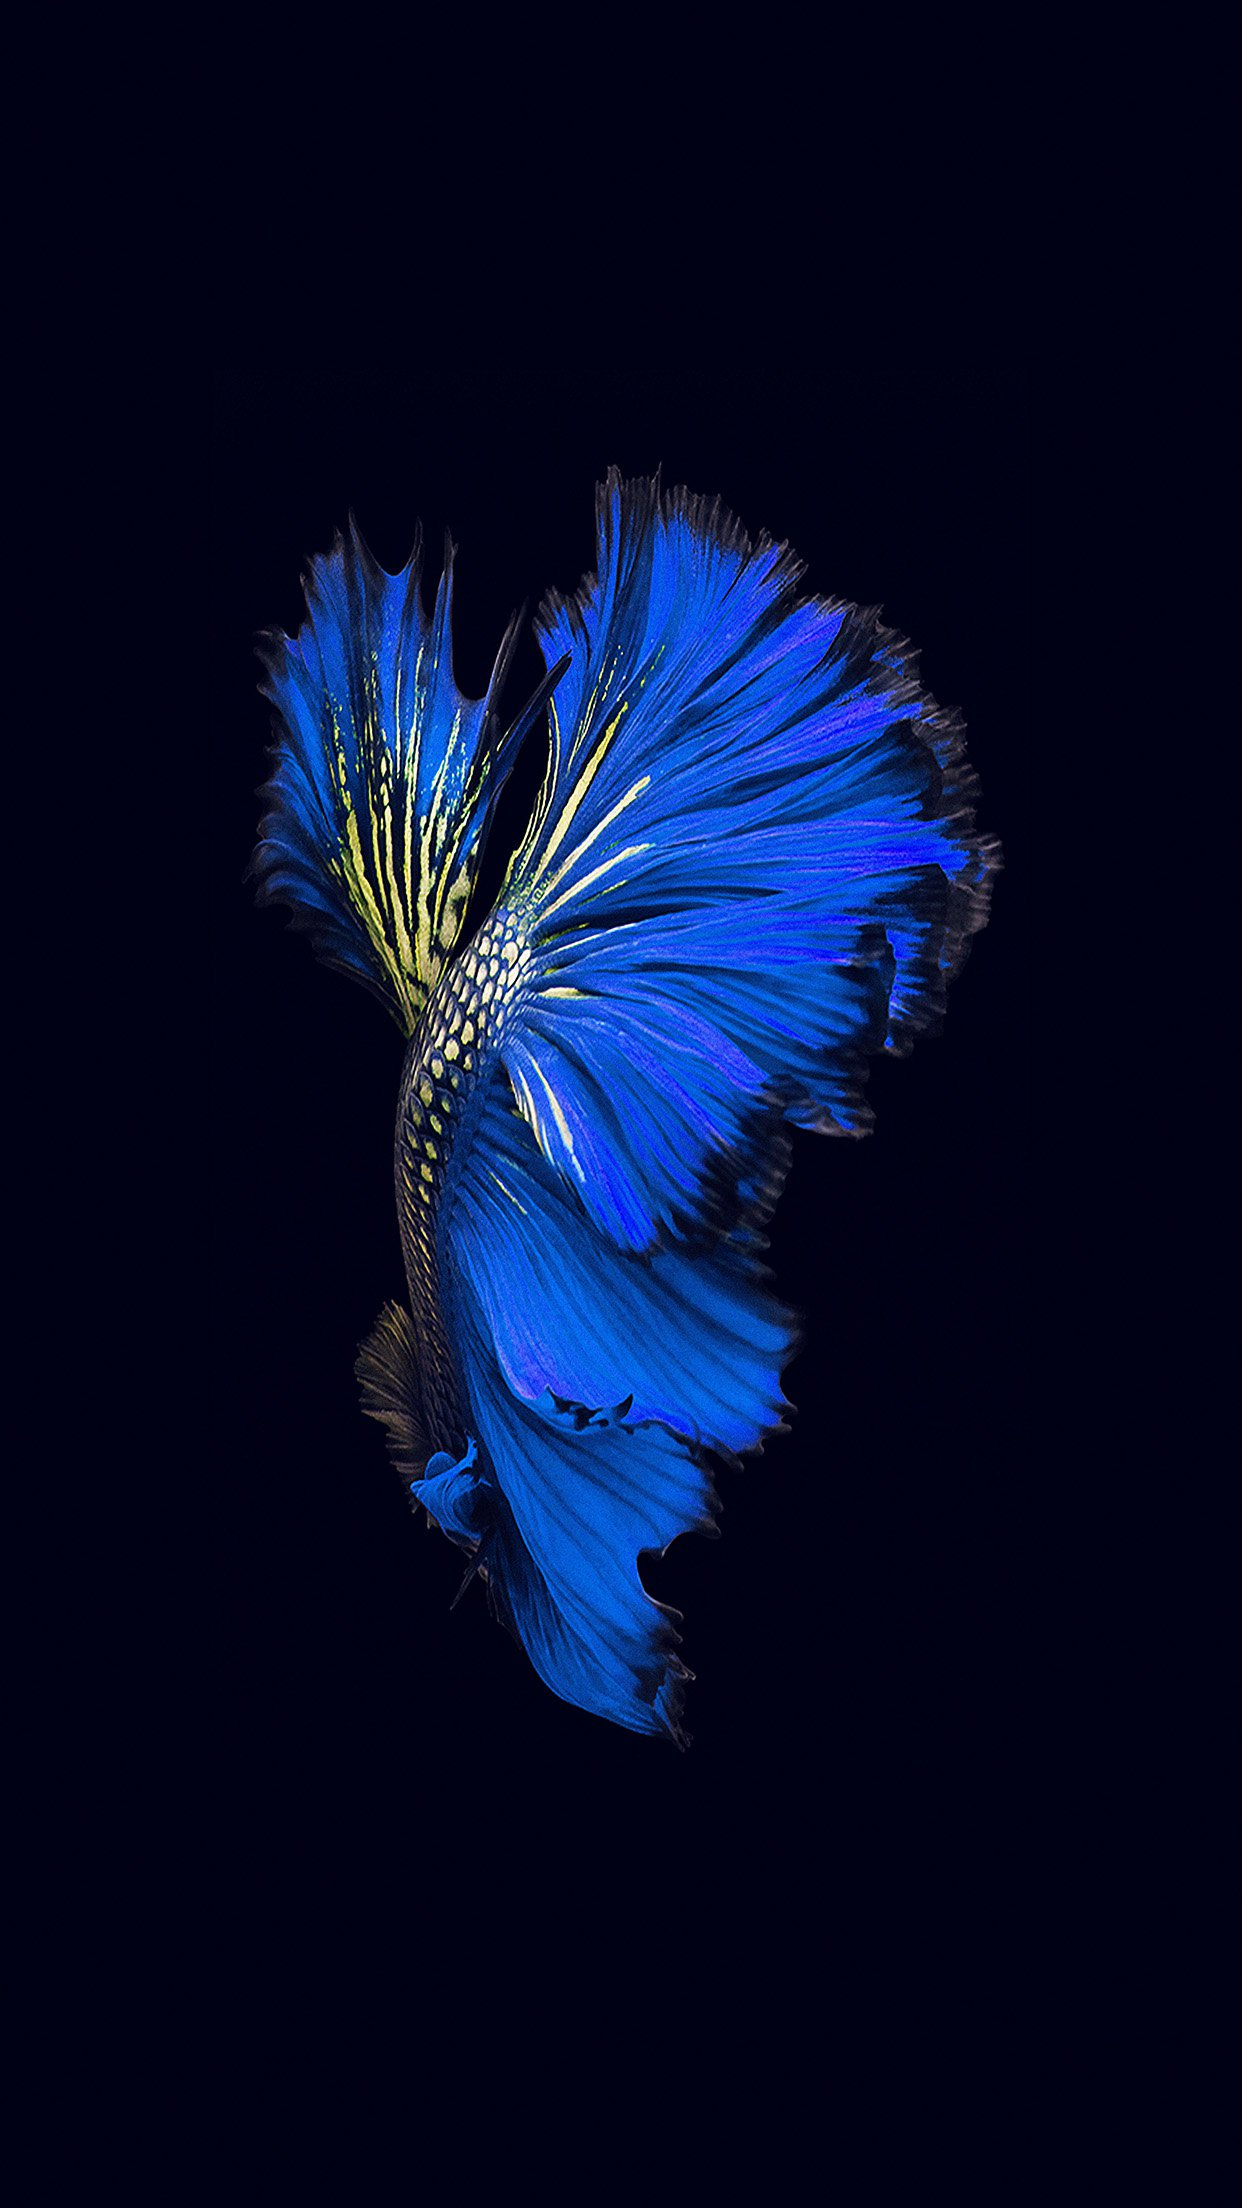 Apple Ios9 Fish Live Background Dark Blue Android Wallpaper